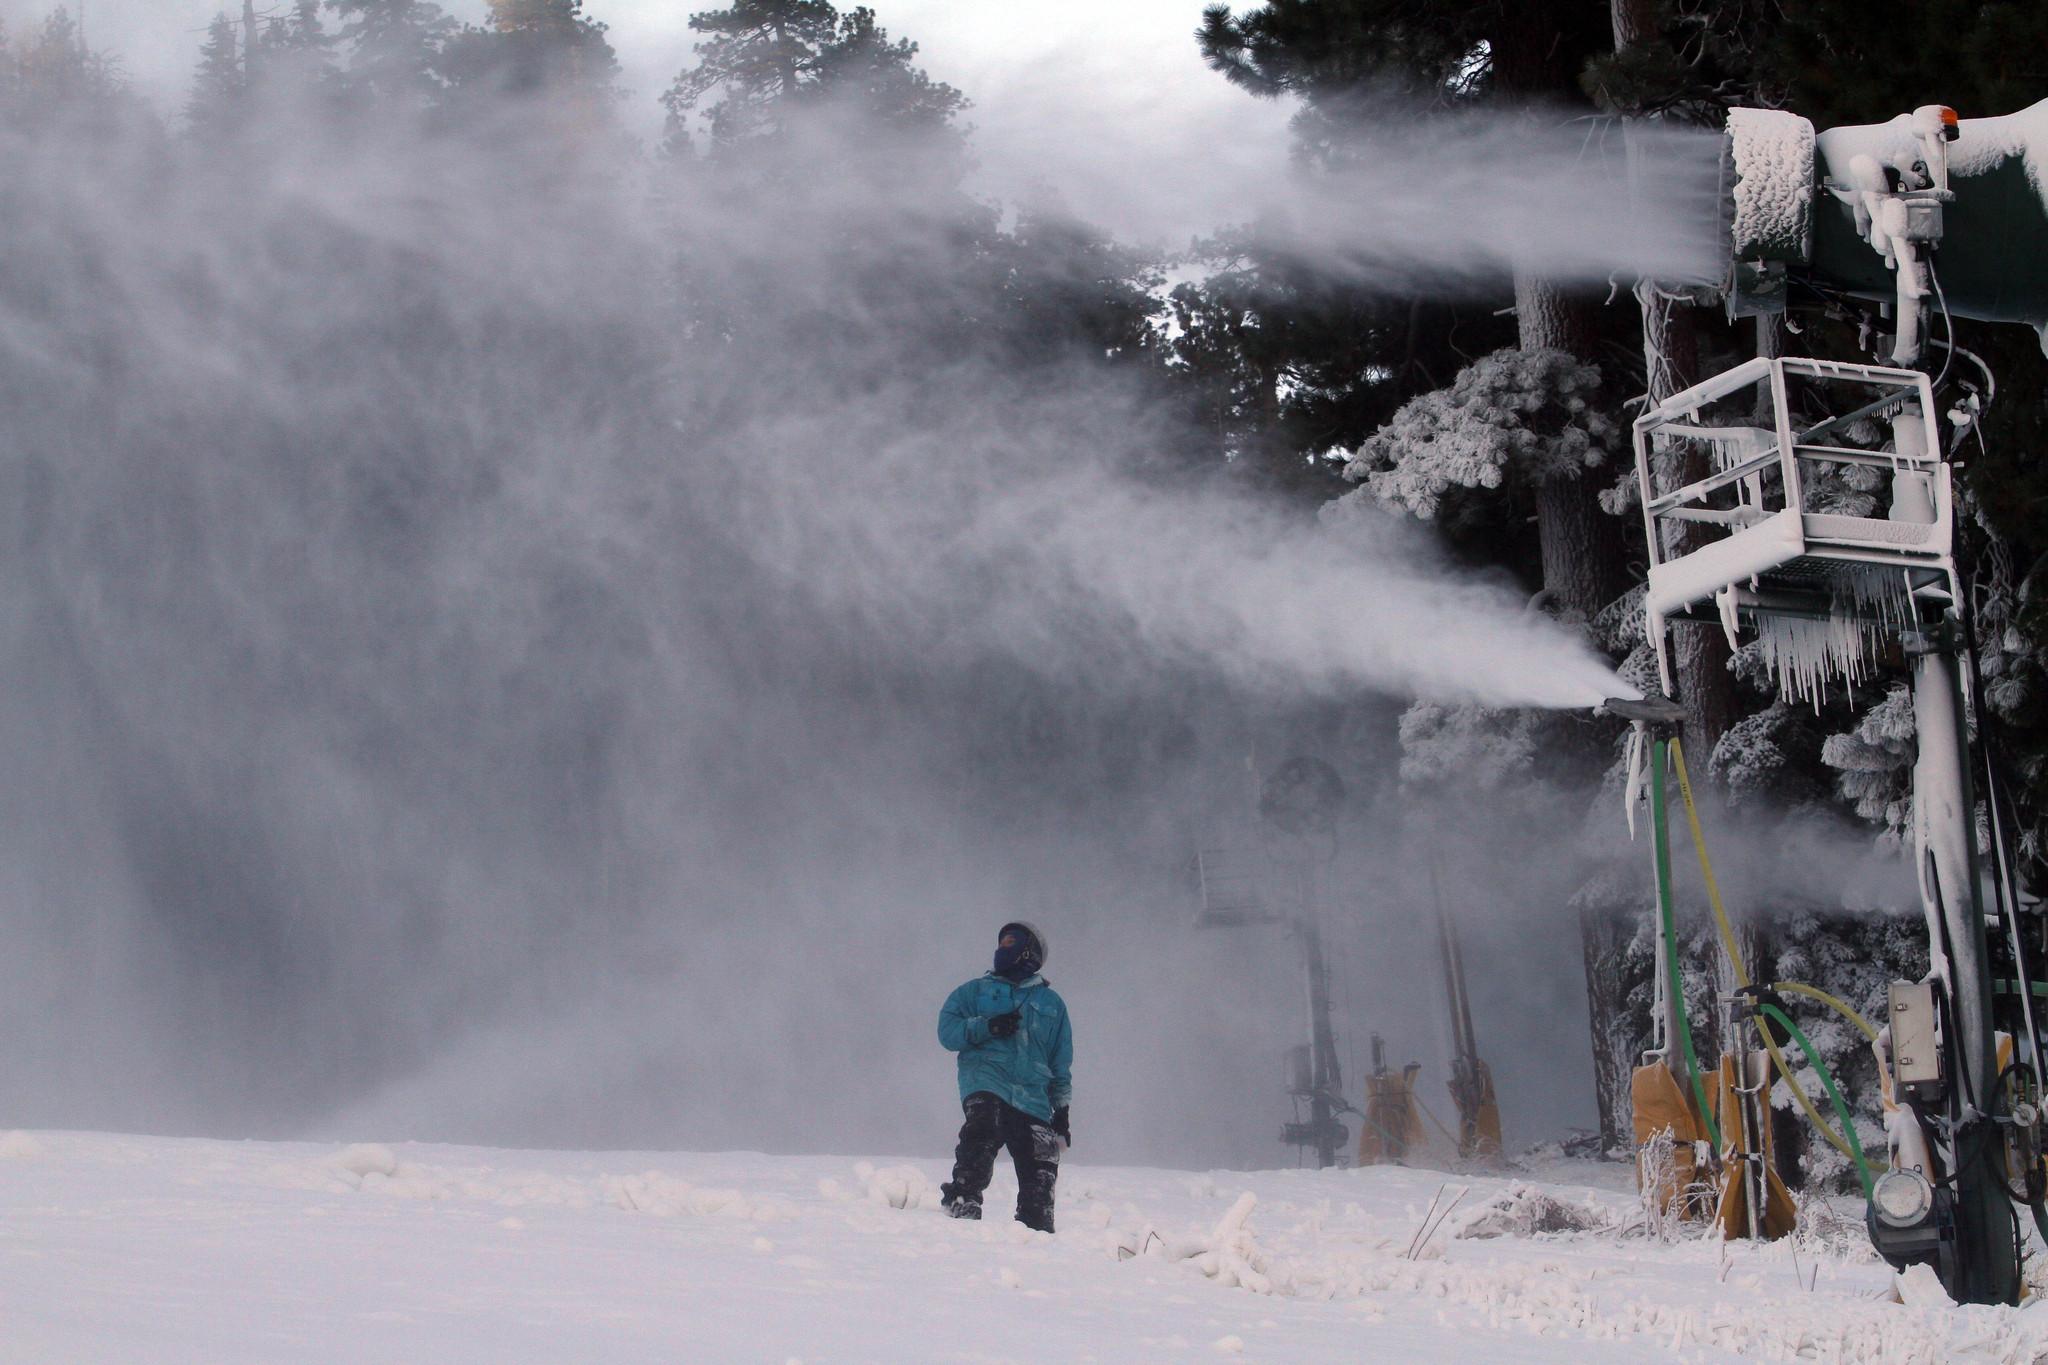 Socal ski resorts mountain high opens today snow summit for Cabins near snow summit